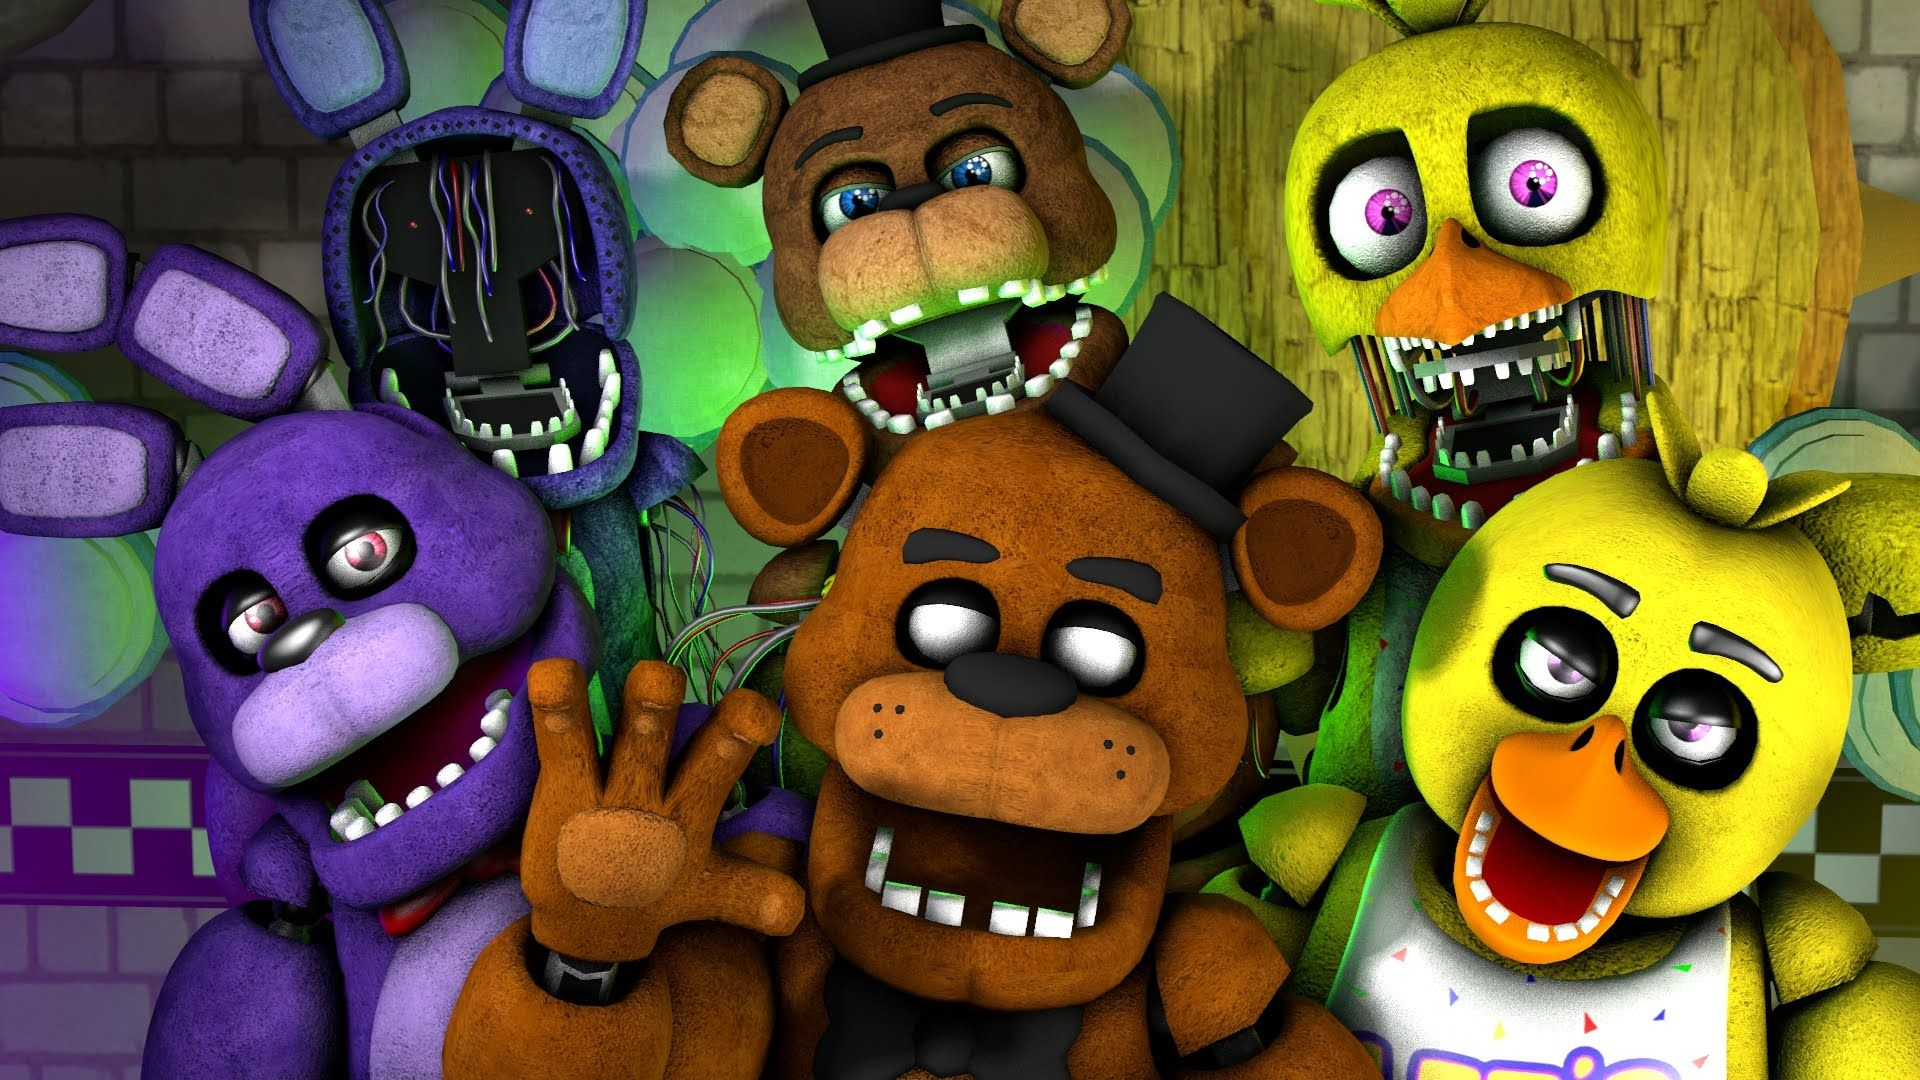 Sfm fnaf 1 4 song the finale natewantstobattle the withereds fnaf publicscrutiny Choice Image